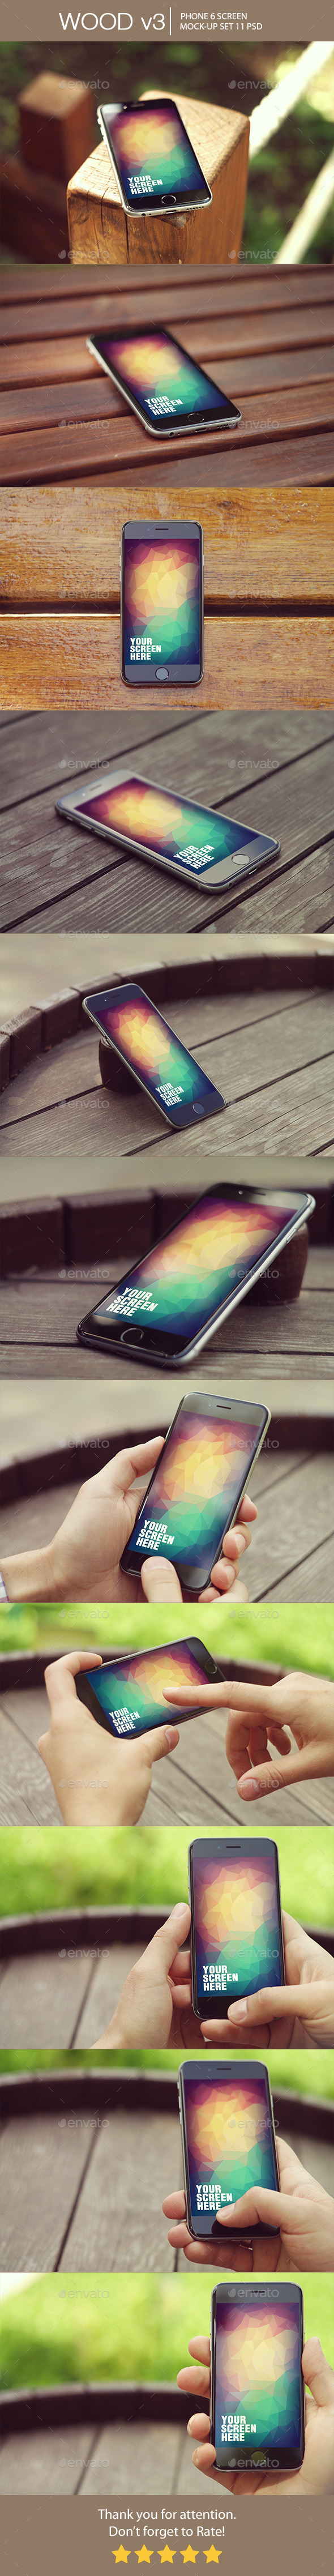 Wood v3 Phone 6 Mock-Up - Mobile Displays